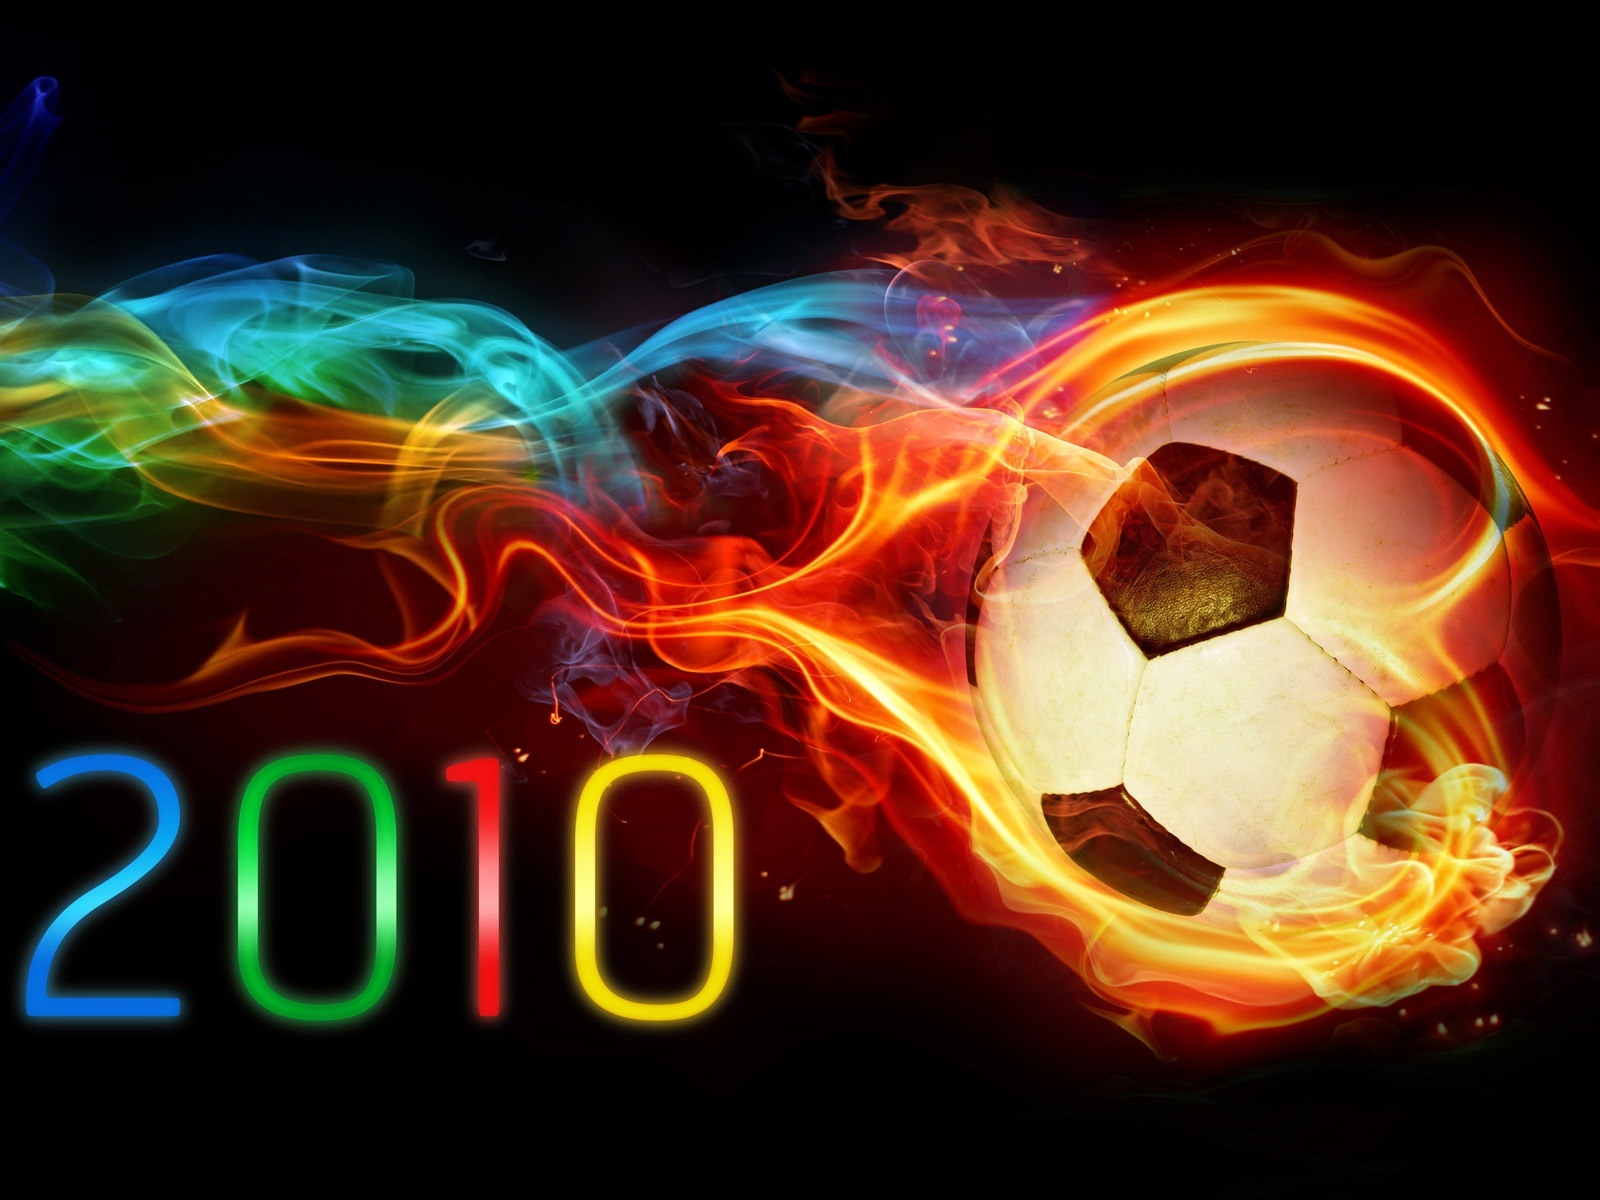 click to free download the wallpaper--Free Football Wallpaper - The Football is on Fire, It Generated Colorful Lights, Figures Also in Various Colors 1600X1200 free wallpaper download